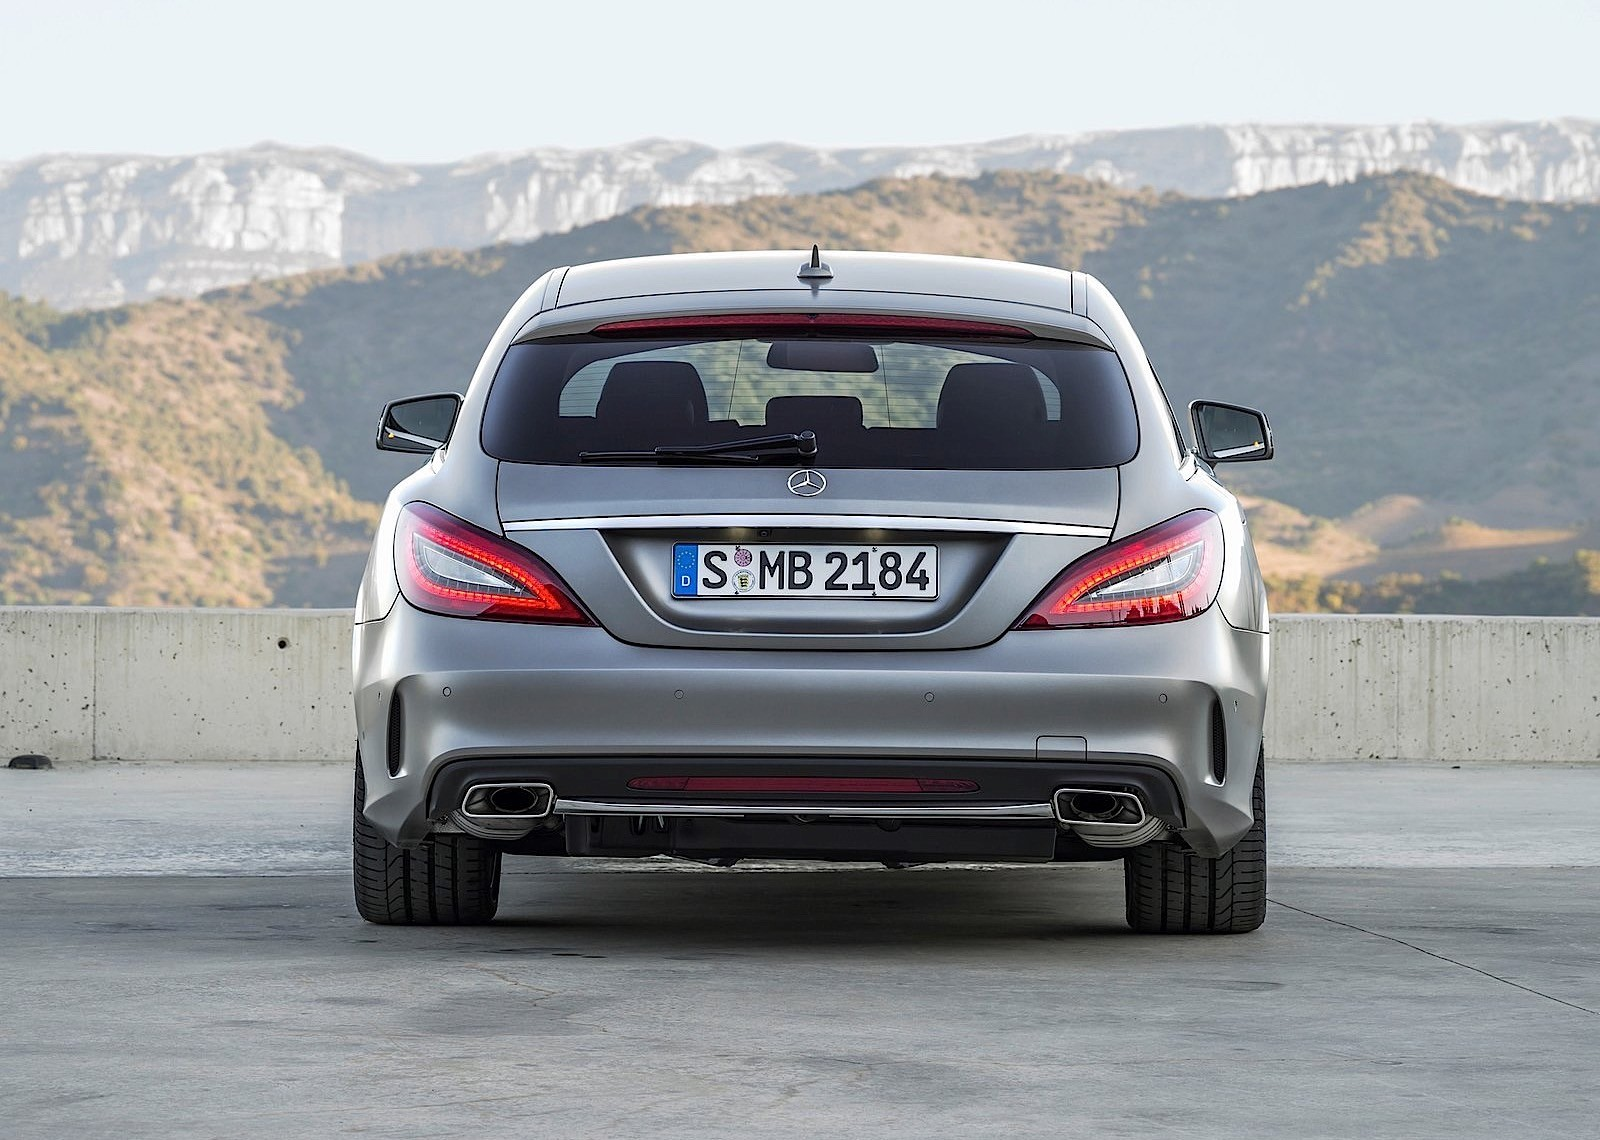 https://www.whatcar.lv/cars/Mercedes-Benz/CLS Shooting Brake/d7777b30b97914889873219c401f5e51.jpg